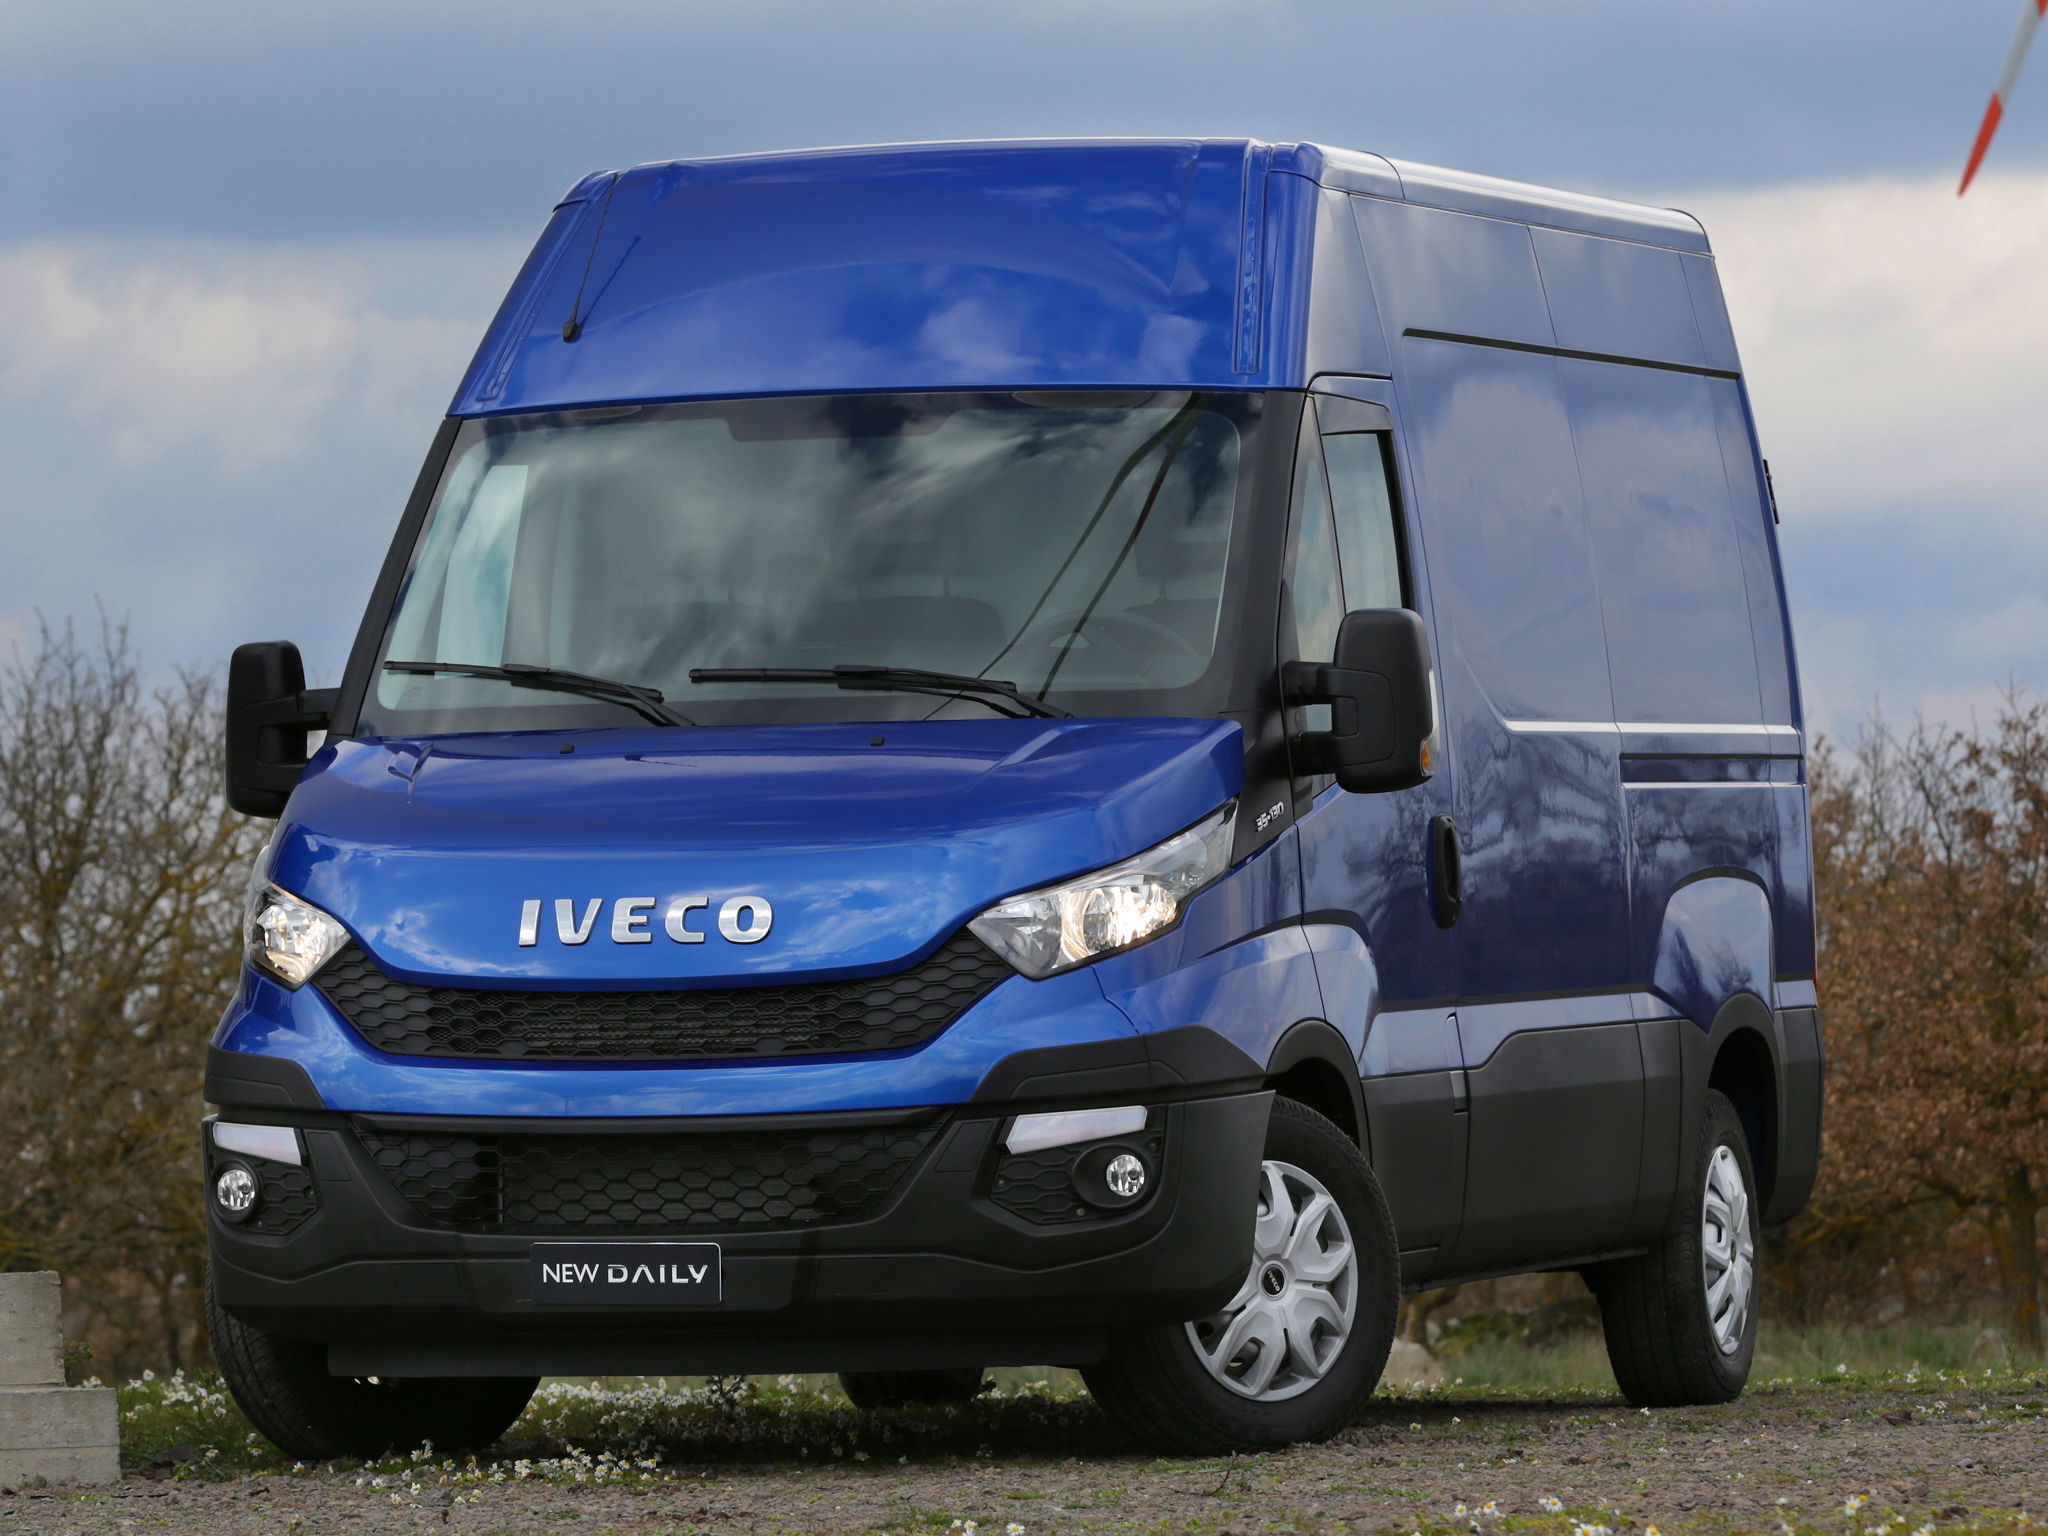 Iveco reveals the new daily for 2014 say it 39 s 80 redesigned autoevolution